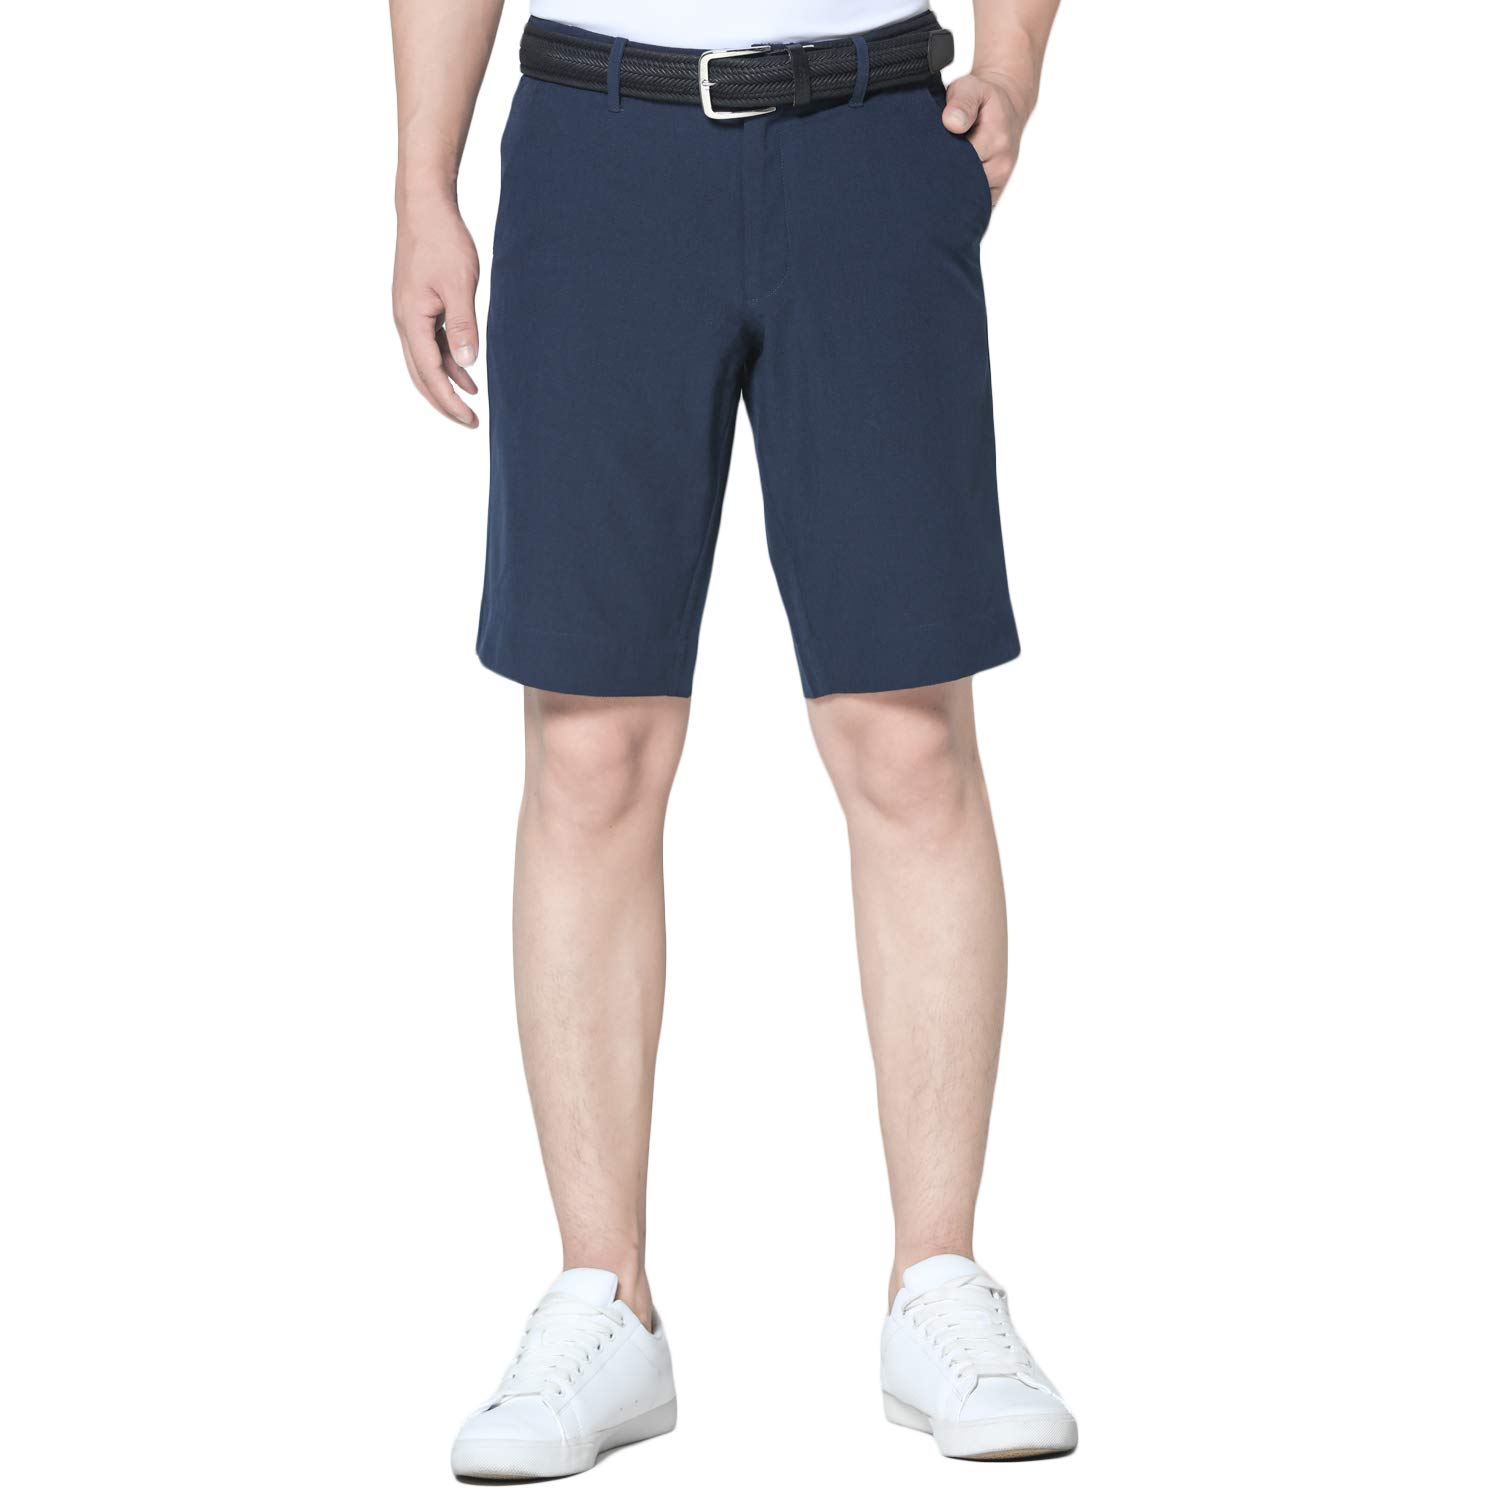 EAGEGOF Dry Fit Golf Shorts for Men Classic Fit Tapered Mens Shorts Athletic